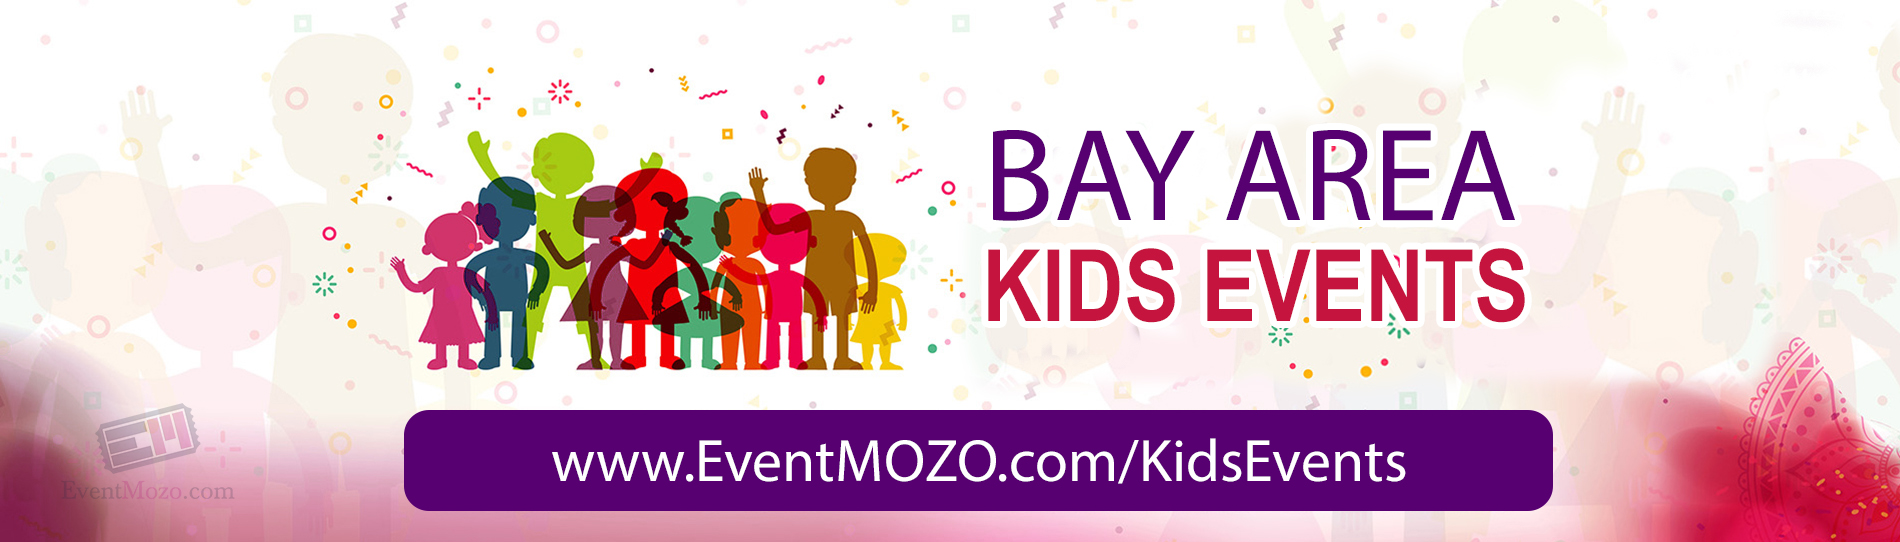 EventMozo Bay Area Kids Events 2019